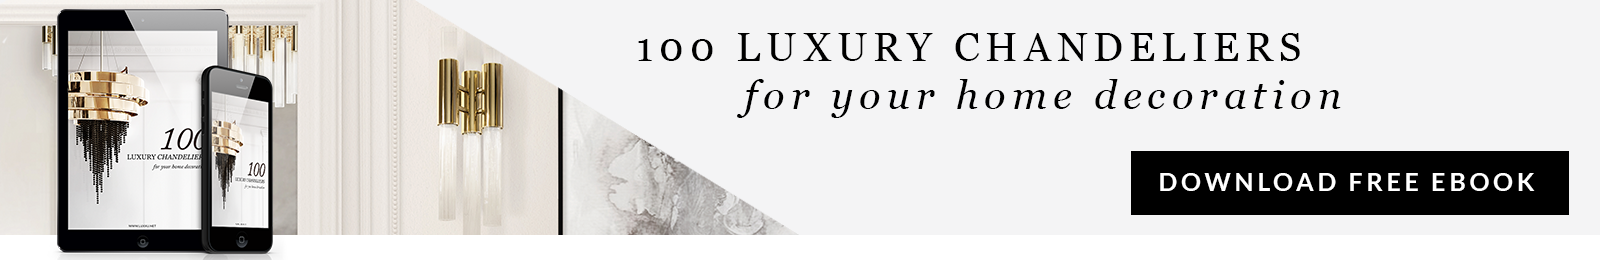 luxury furniture Get to Know Luxxu's Newest Luxury Furniture Designs 100 luxury chandeliers by luxxu